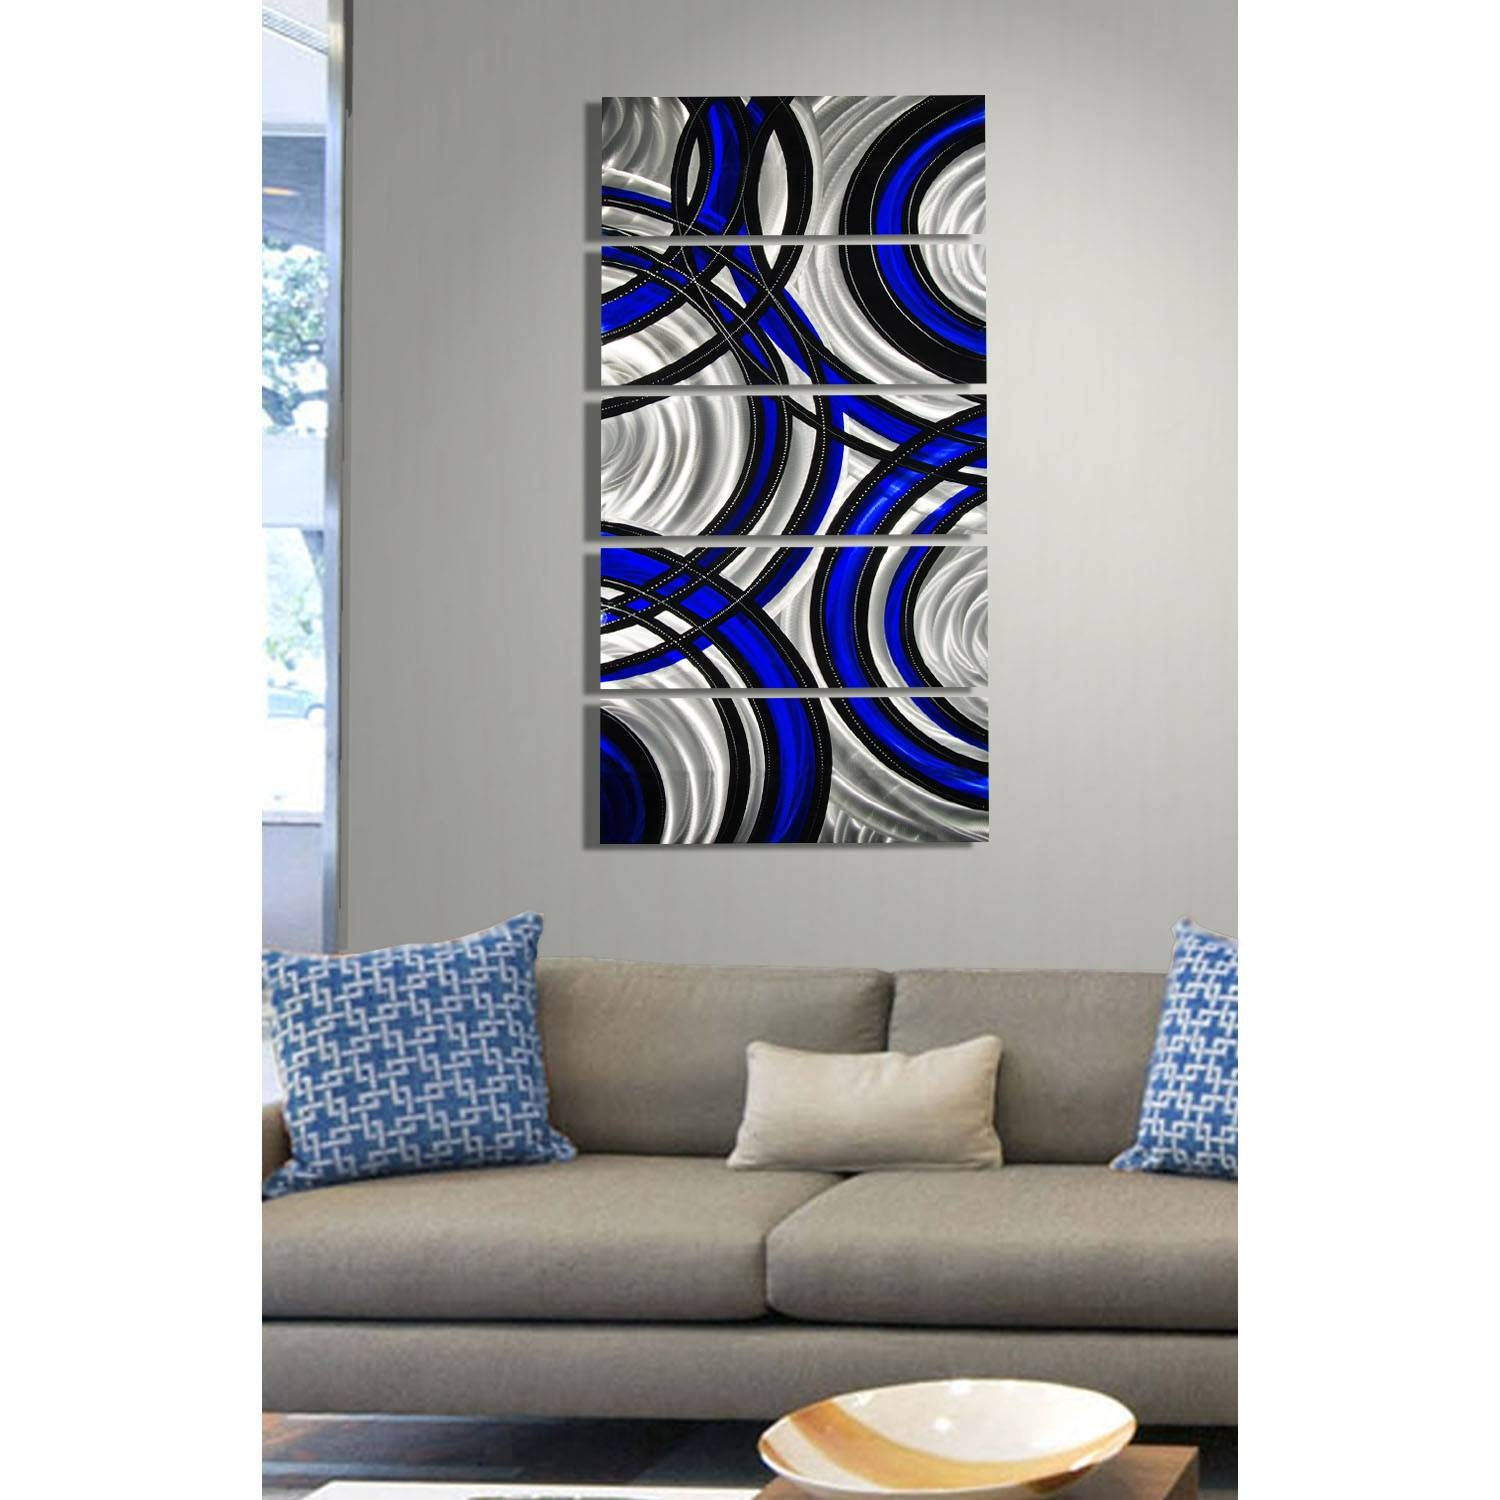 Blue Synergy – Blue, Black And Silver Metal Wall Art – 5 Panel For Most Up To Date Blue And Silver Wall Art (View 4 of 20)